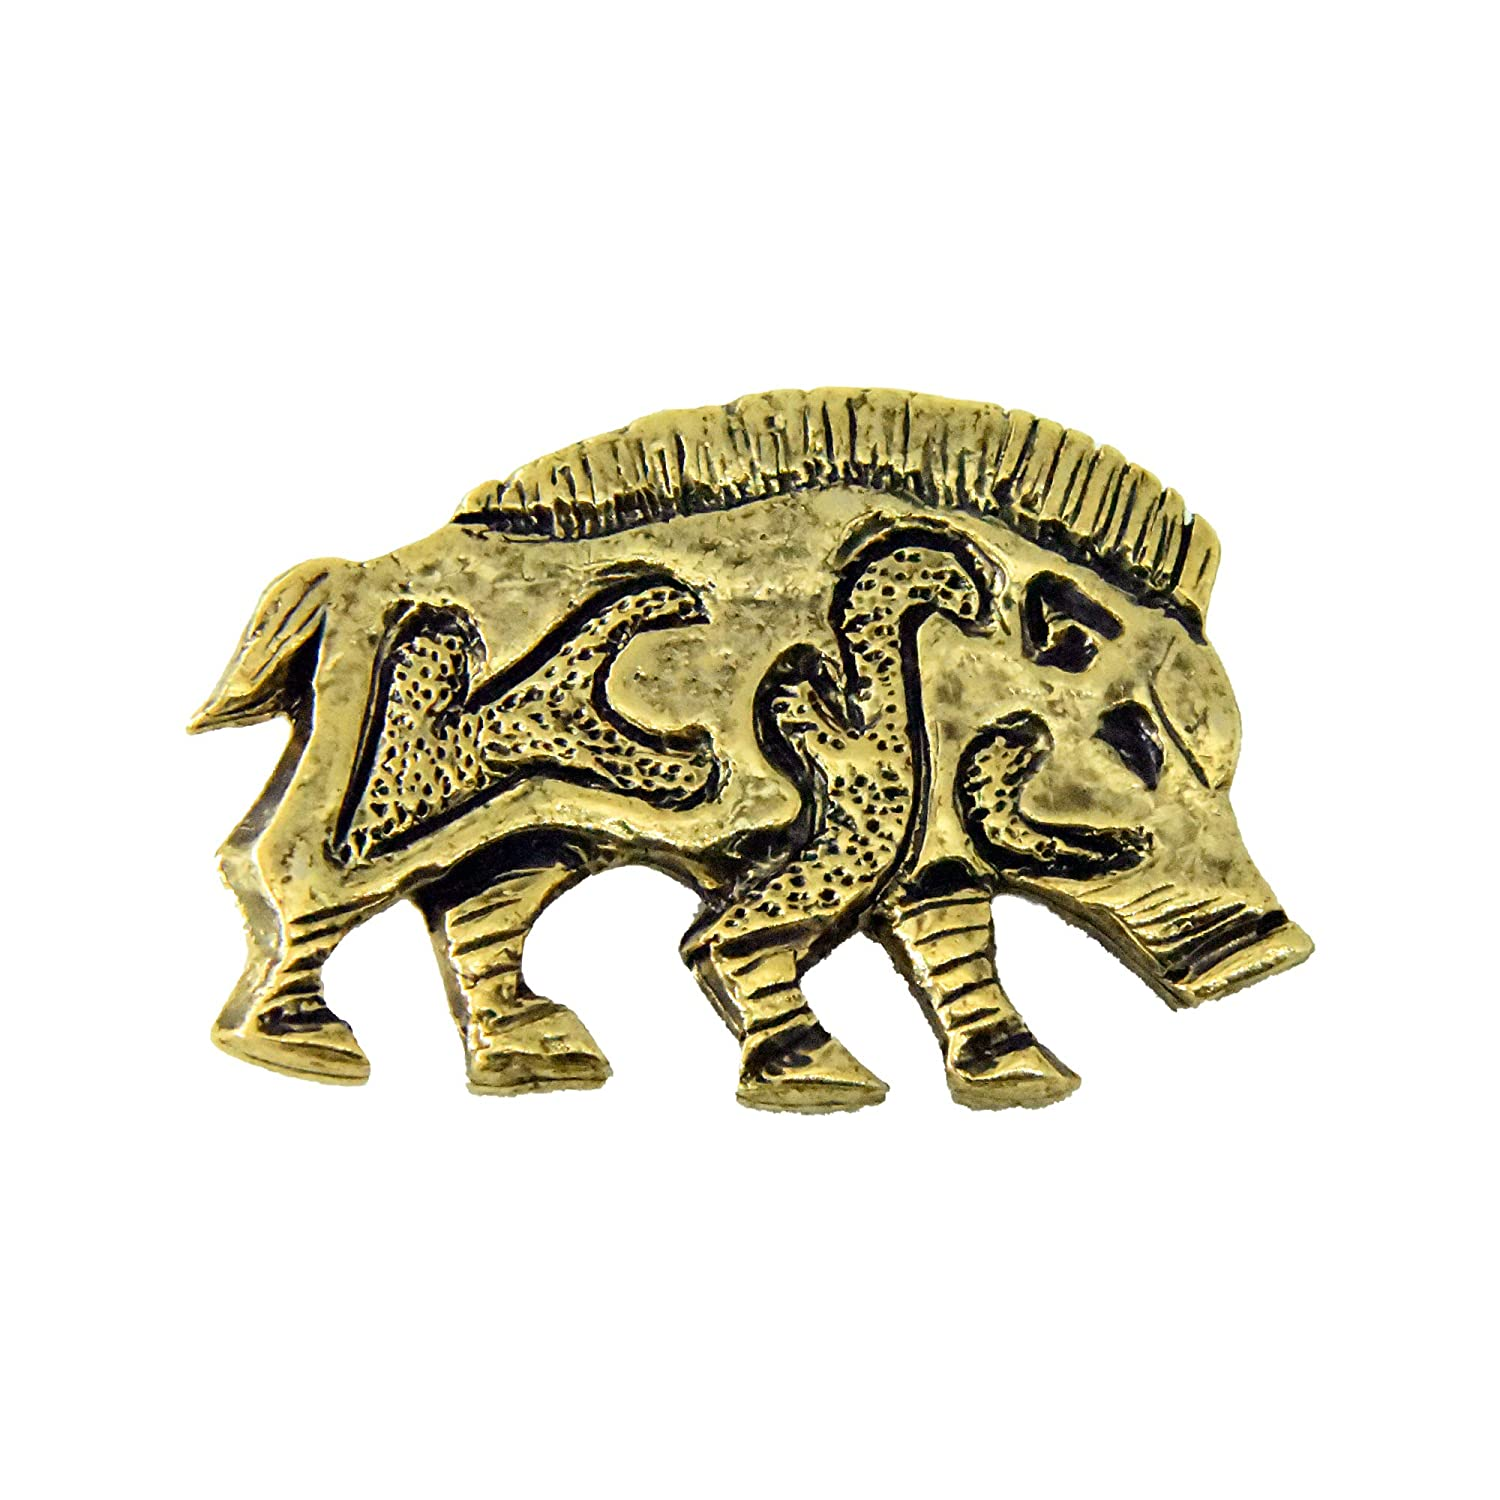 Amazon.com: Celtic Boar Pig Hog Pin, Broche, Joyería, G004 ...